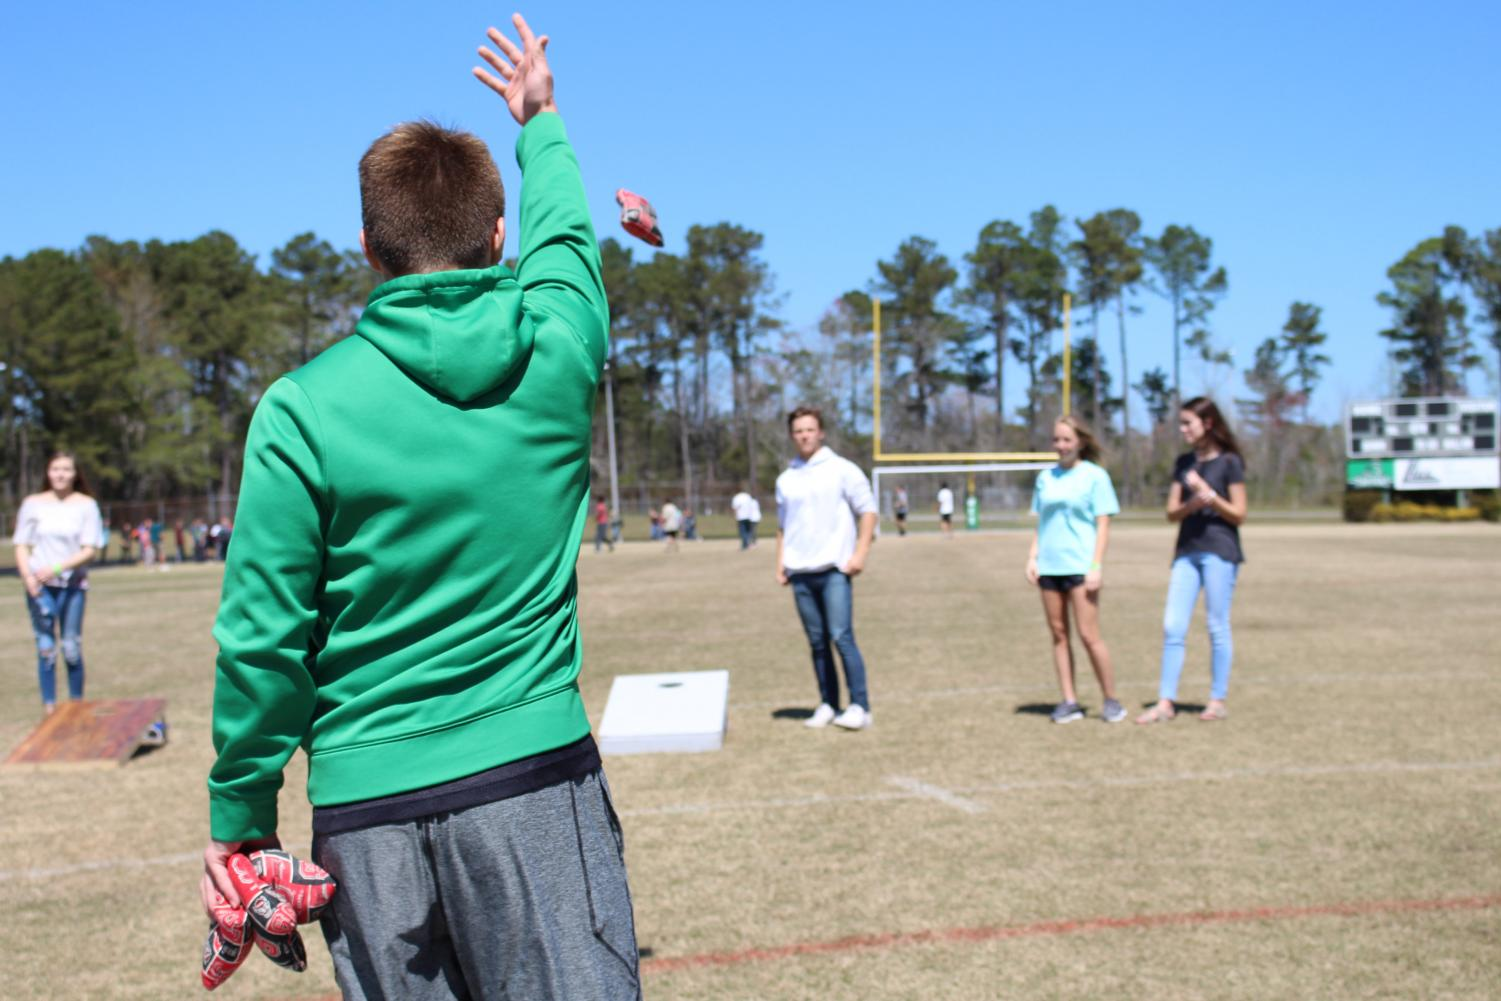 Jay Fletcher defeating his fellow students in corn hole.